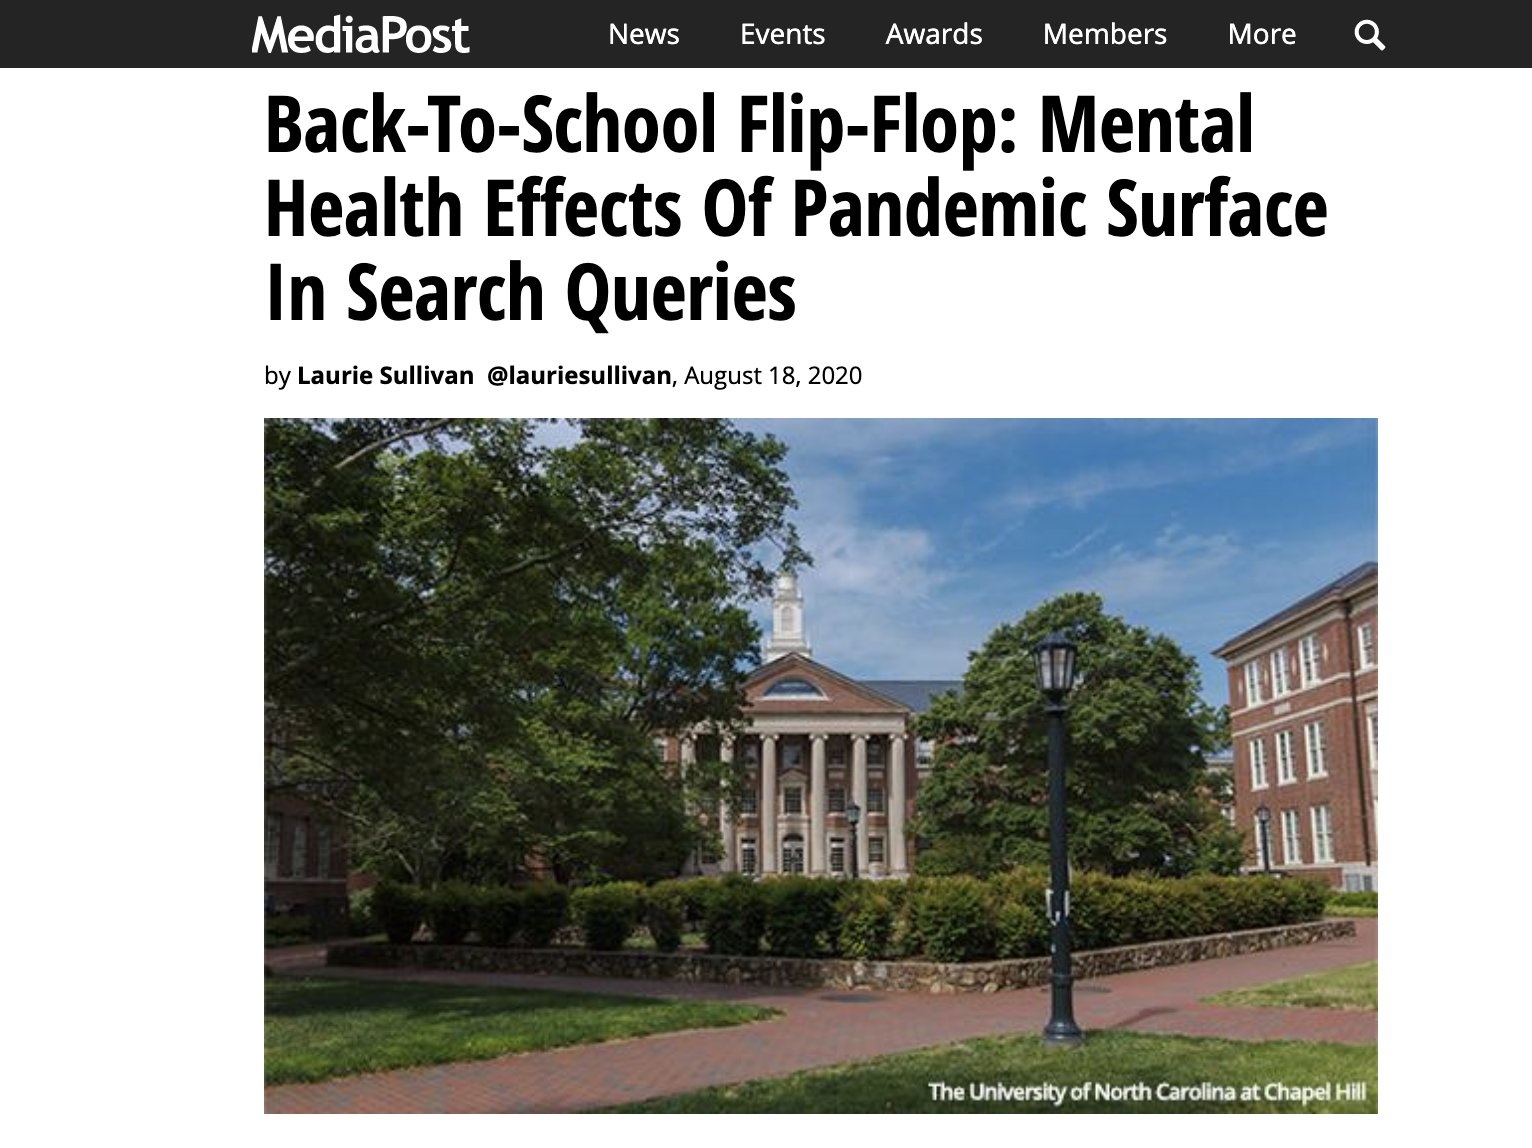 MediaPost: Back-To-School Flip-Flop – Mental Health Effects Of Pandemic Surface In Search Queries